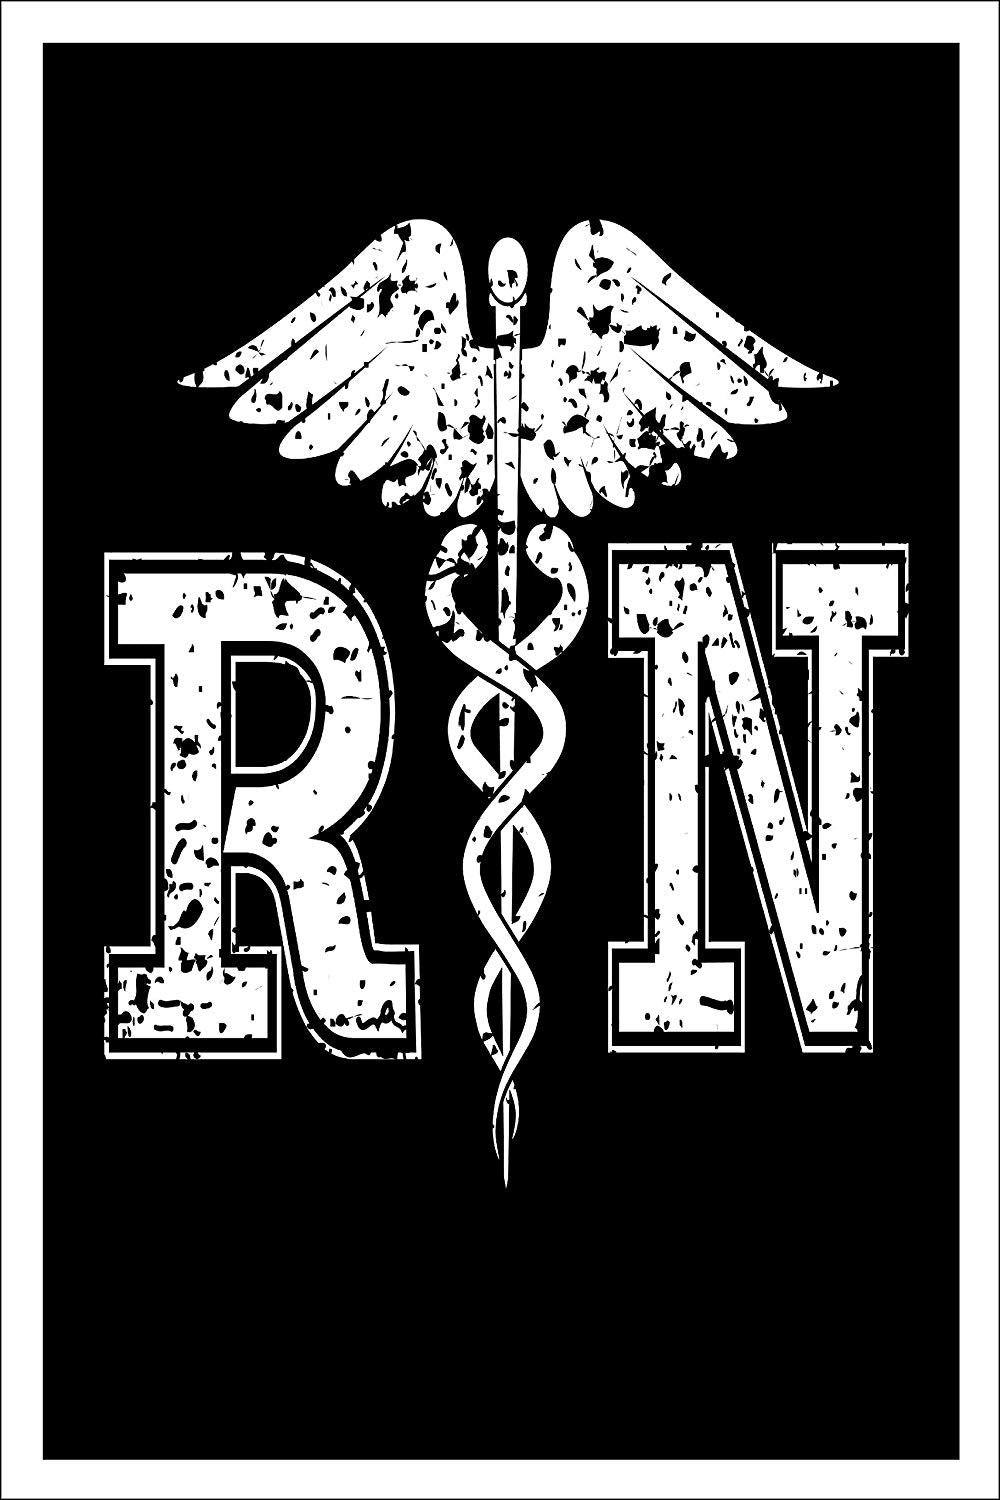 Spitzy's RN - Registered Nurse 12 x 18 inch Poster - Nursing Wall Art for Bedroom or Office - Great for School Nurses, Men, Women, Boys and Girls